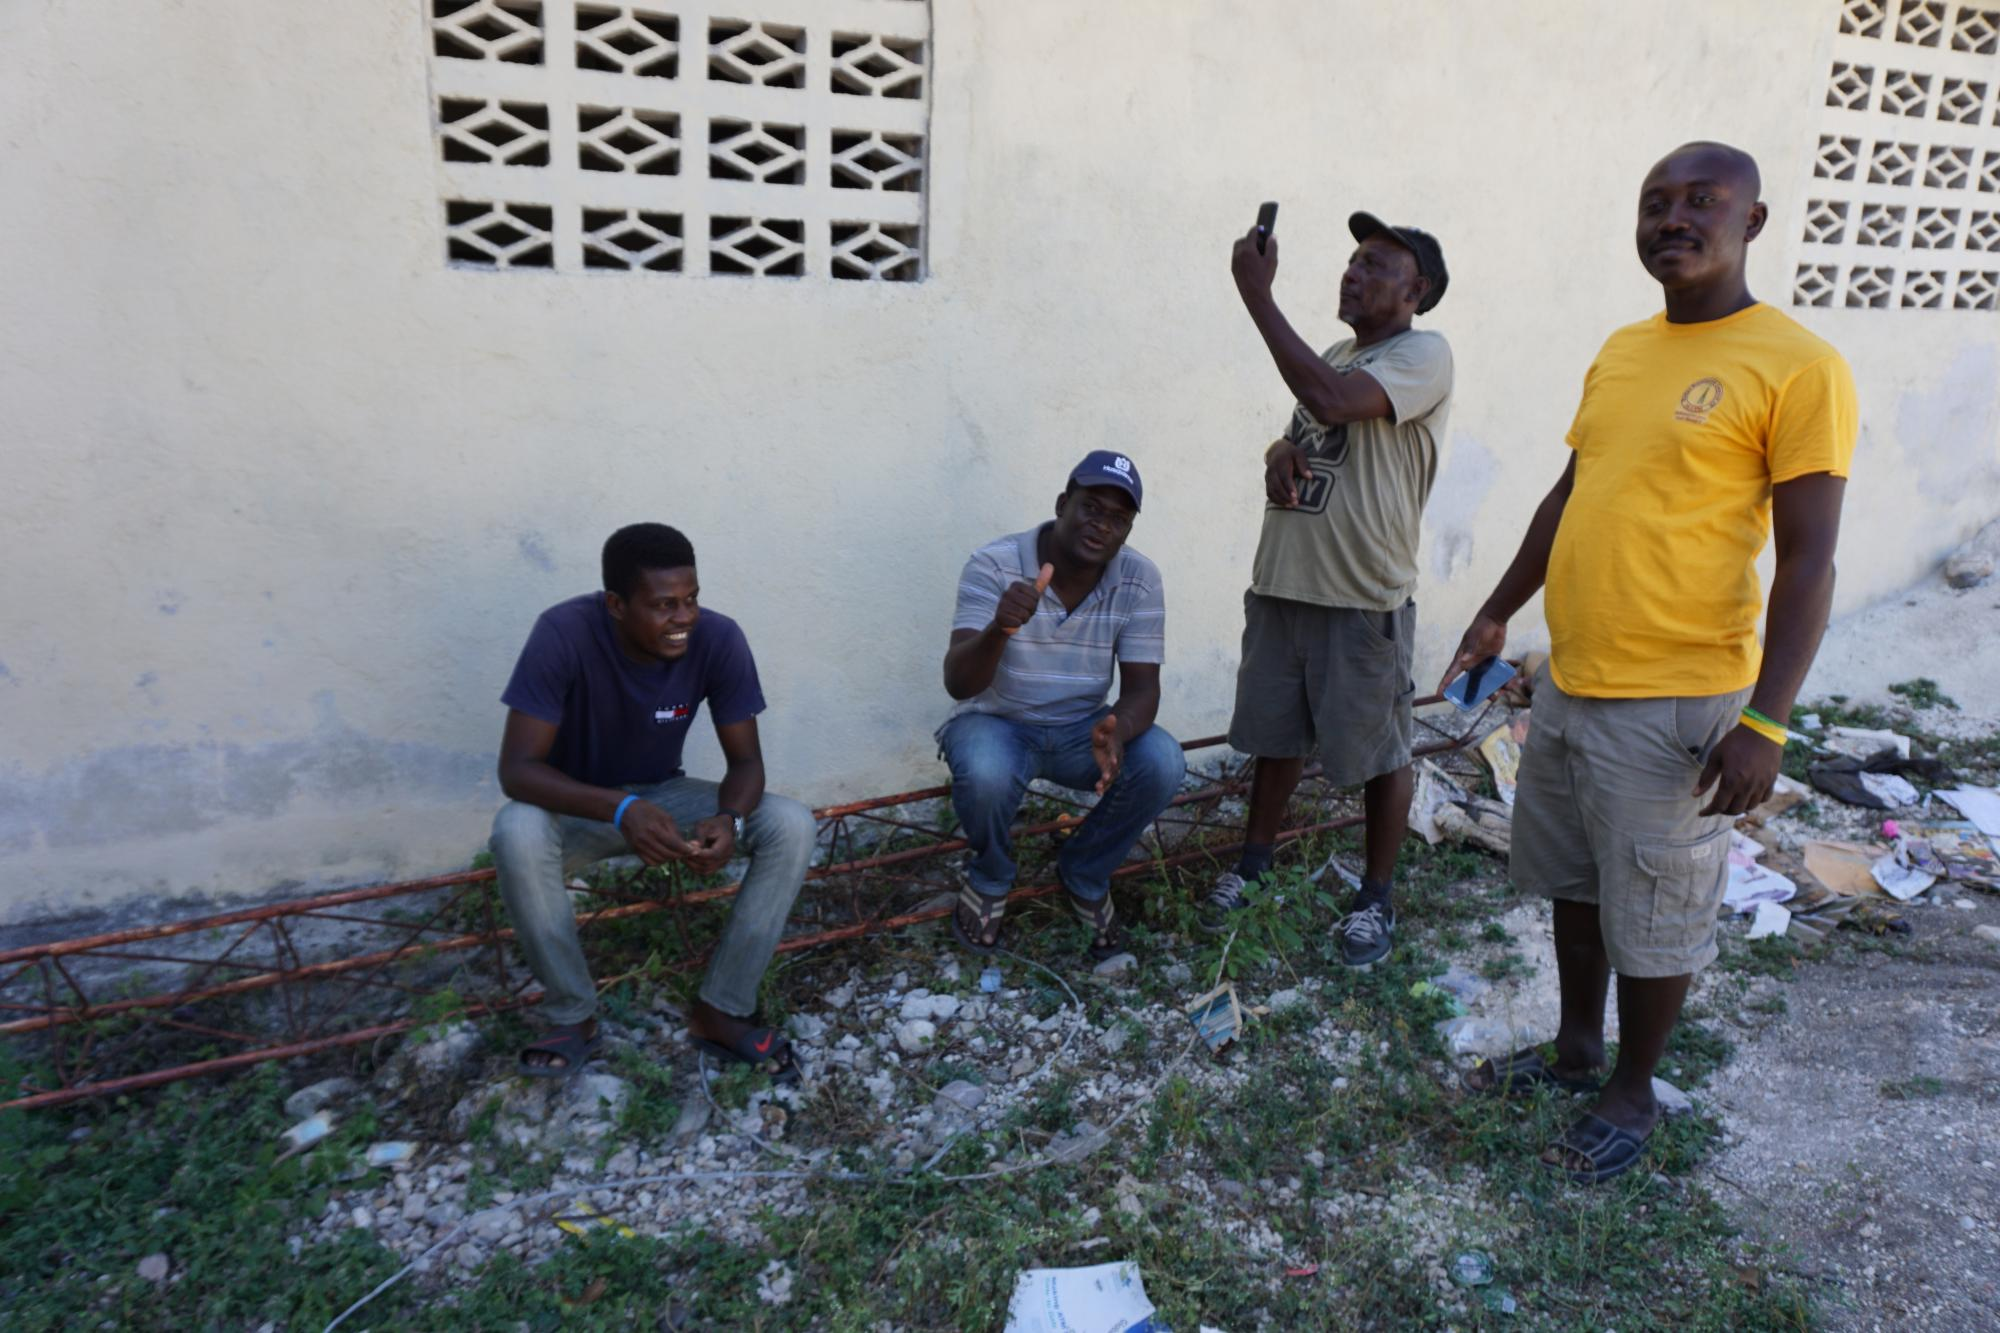 This project will allow the community in the most-affected parts of Haiti to access information on the response through a medium that they are familiar with, community radio. Photo: WFP  / Christopher Alagna